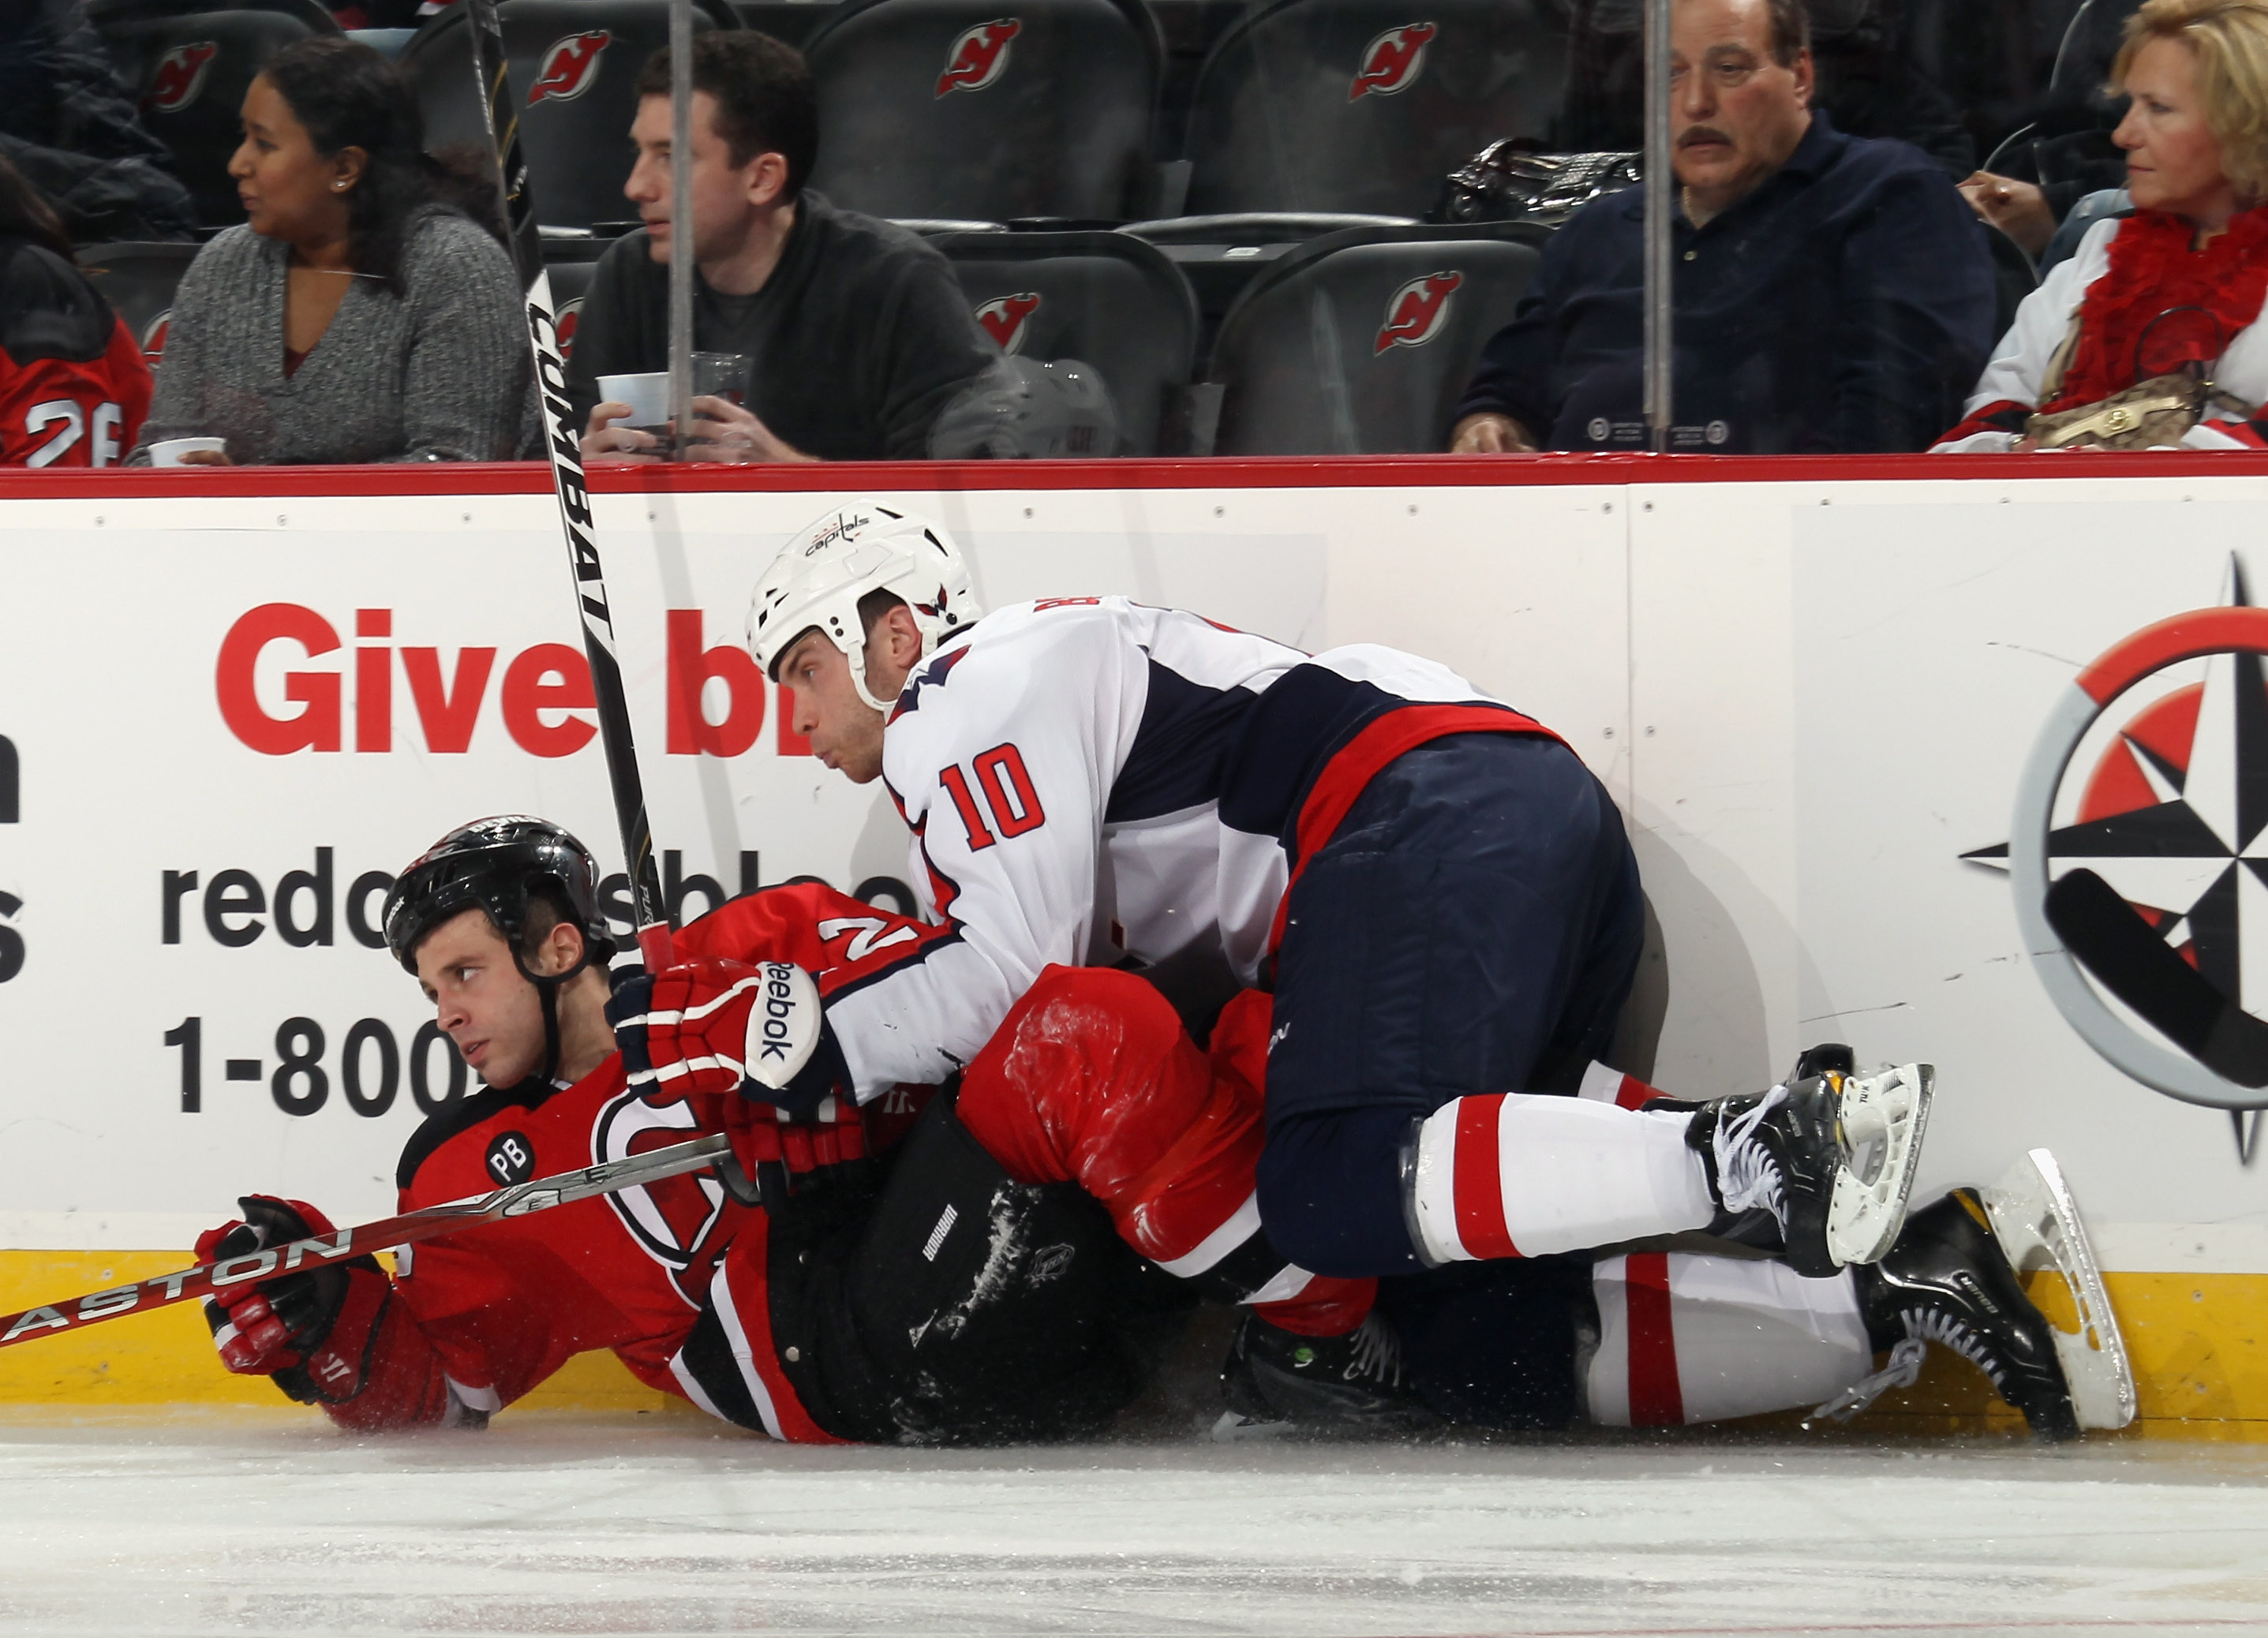 NEWARK, NJ - NOVEMBER 22: Matthew Corrente #22 of the New Jersey Devils is taken down by Matt Bradley #10 of the Washington Capitals at the Prudential Center on November 22, 2010 in Newark, New Jersey.  (Photo by Bruce Bennett/Getty Images)